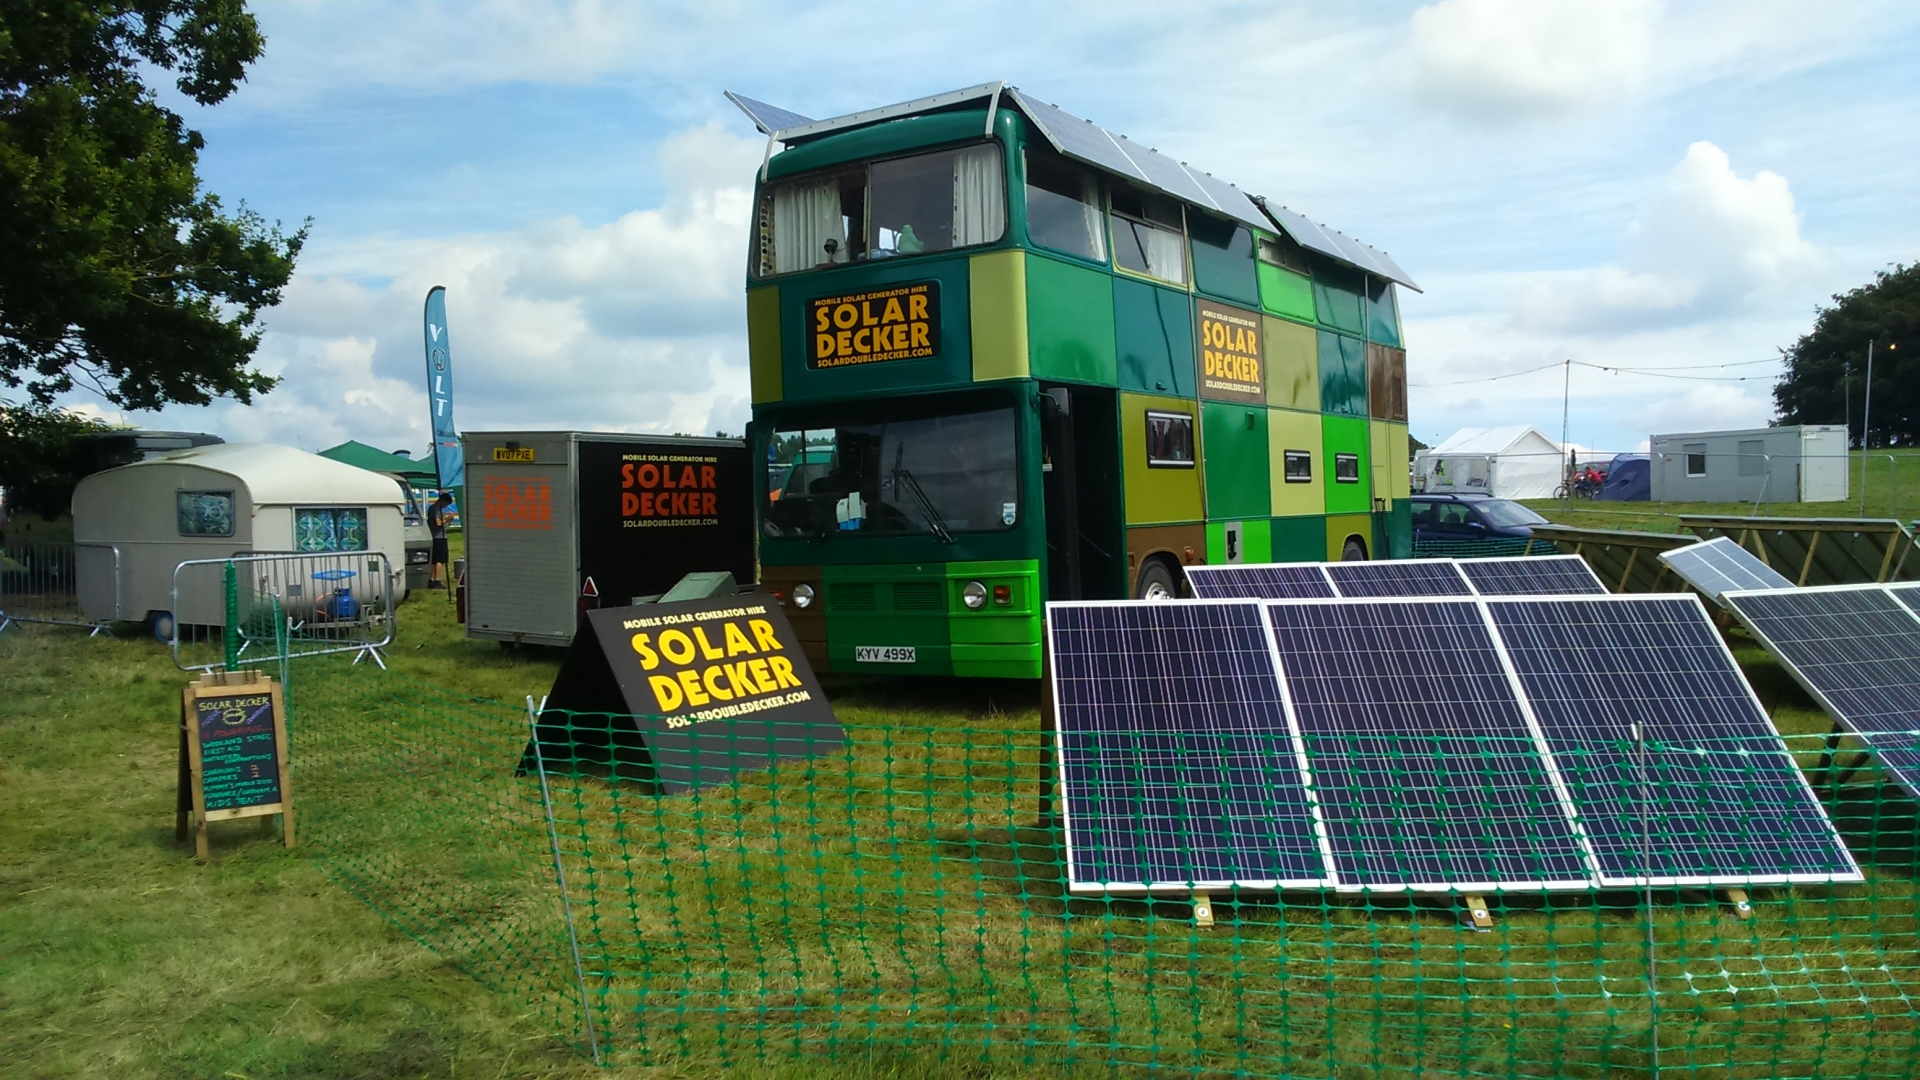 MOBILE SOLAR GENERATOR ....PLEASE CLICK HERE TO READ LATEST POST UPDATES